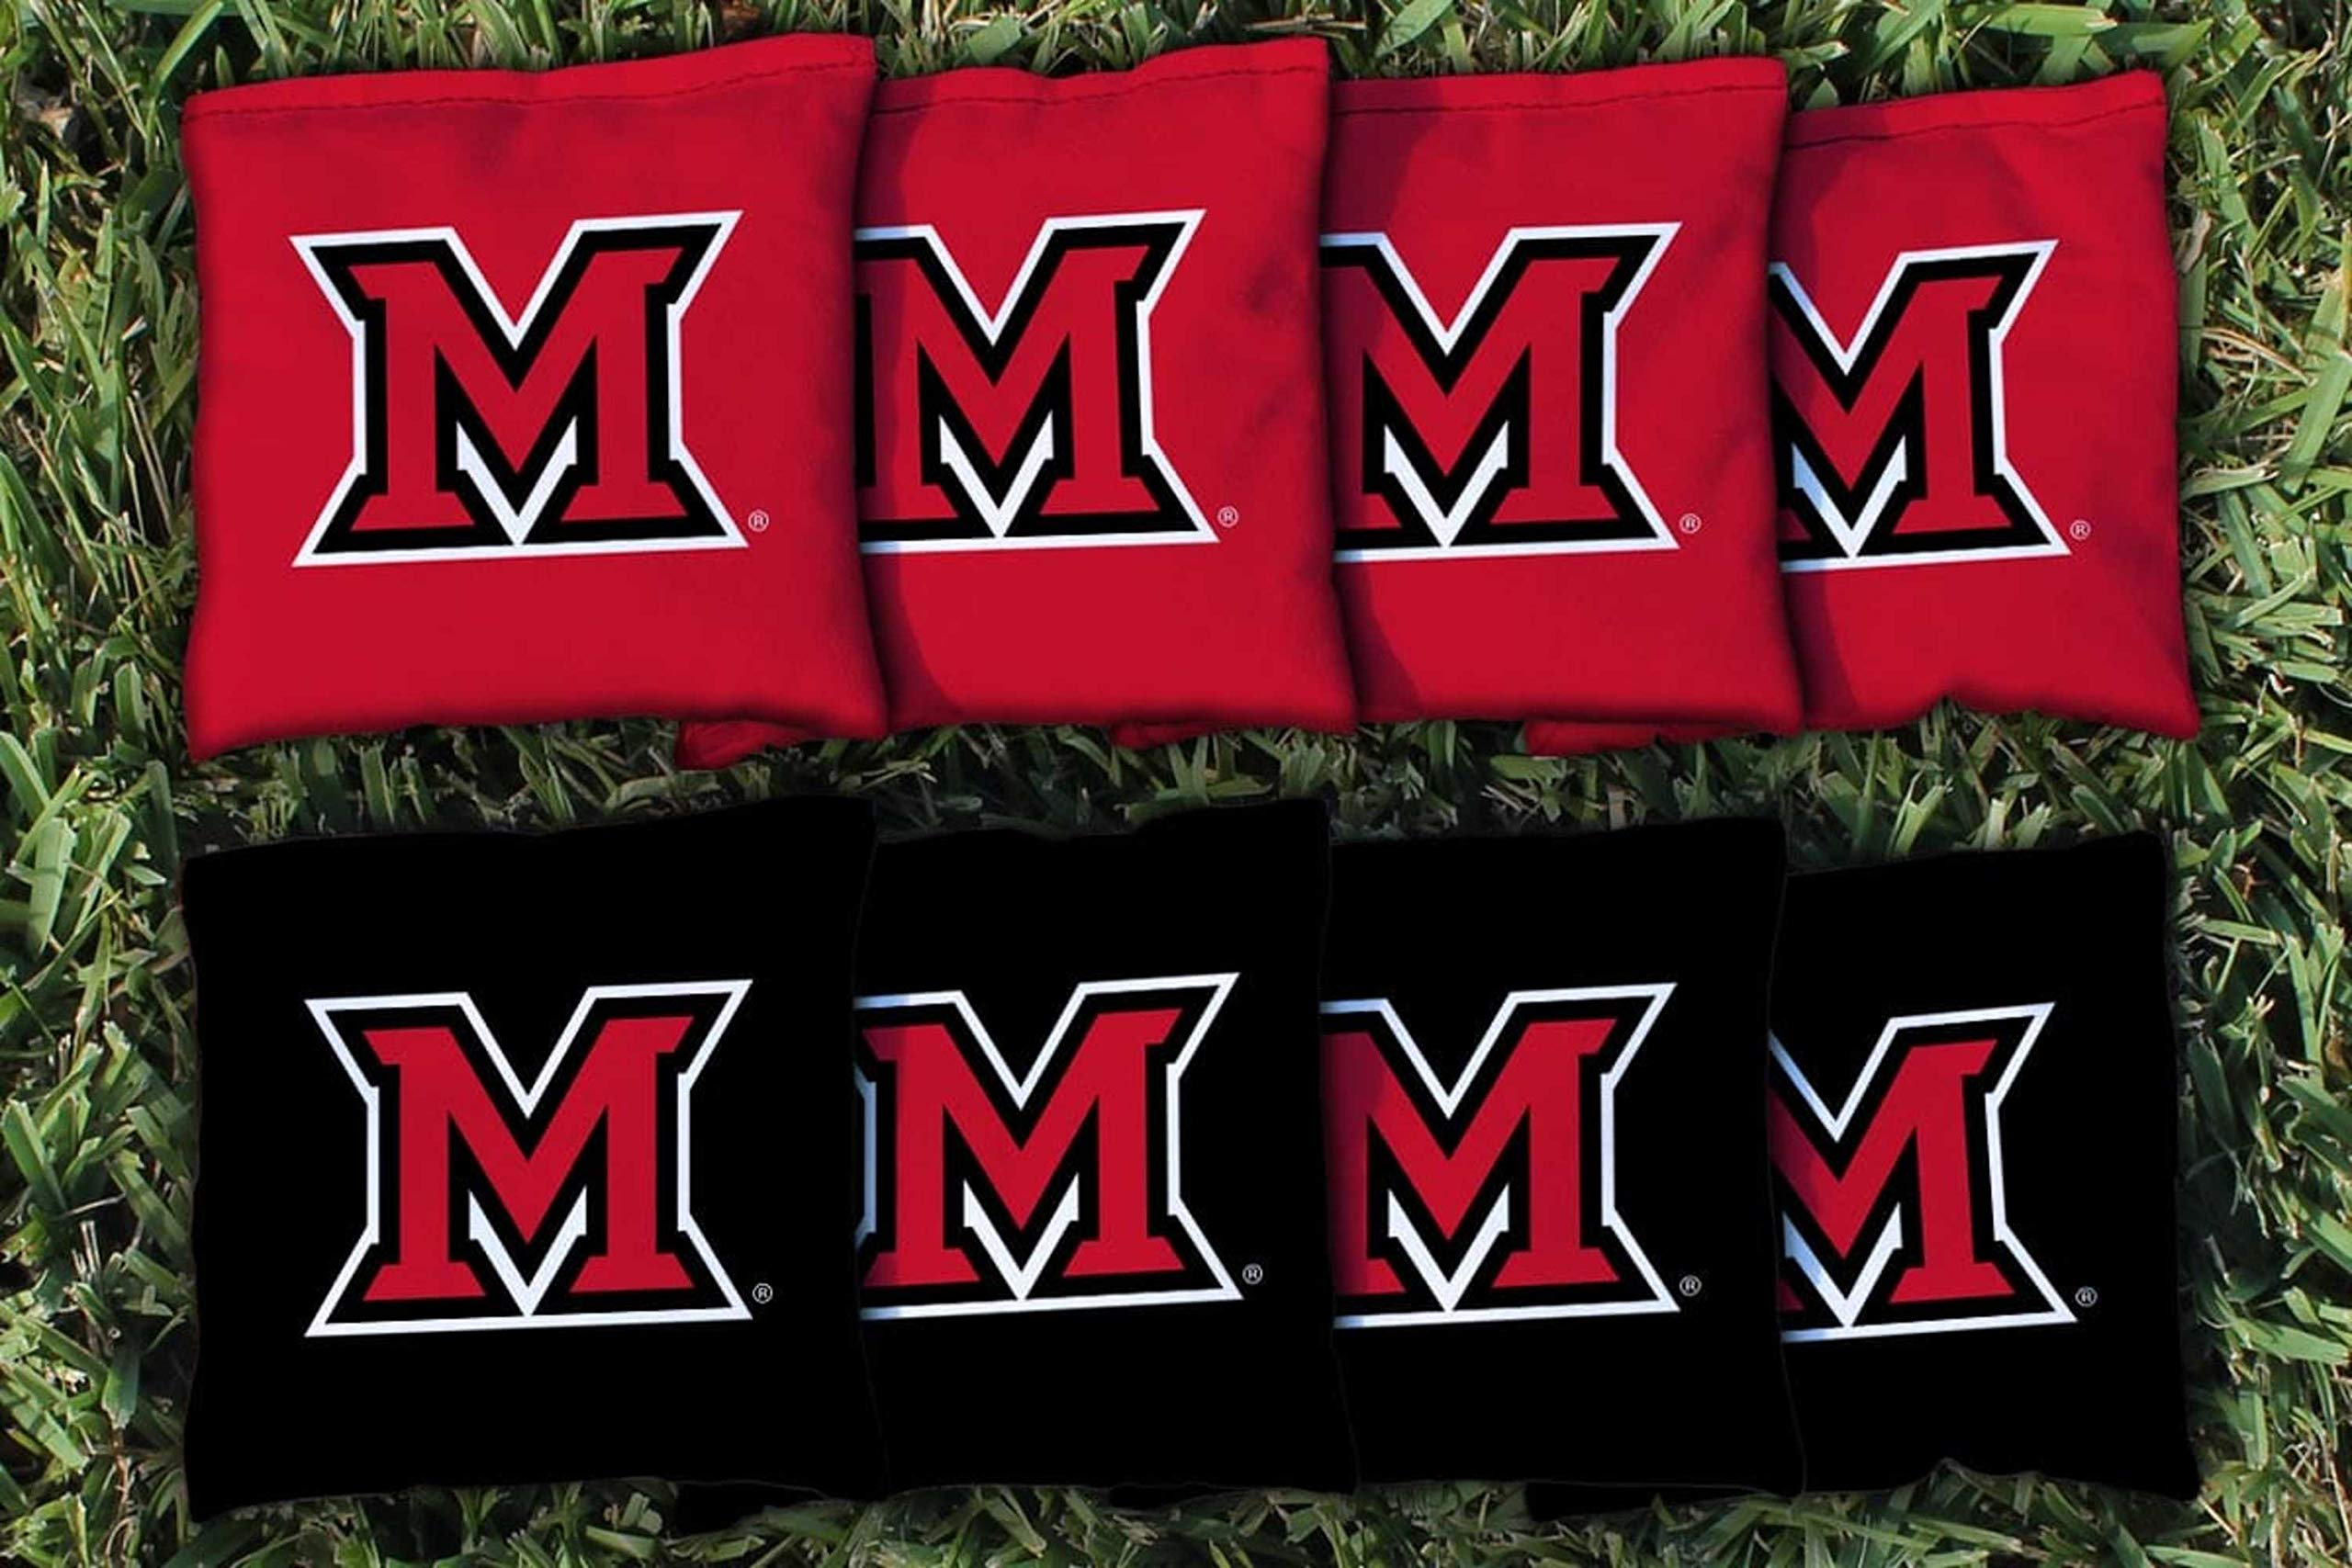 Victory Tailgate NCAA Regulation Cornhole Game Bag Set (8 Bags Included, Corn-Filled) - Miami University Redhawks